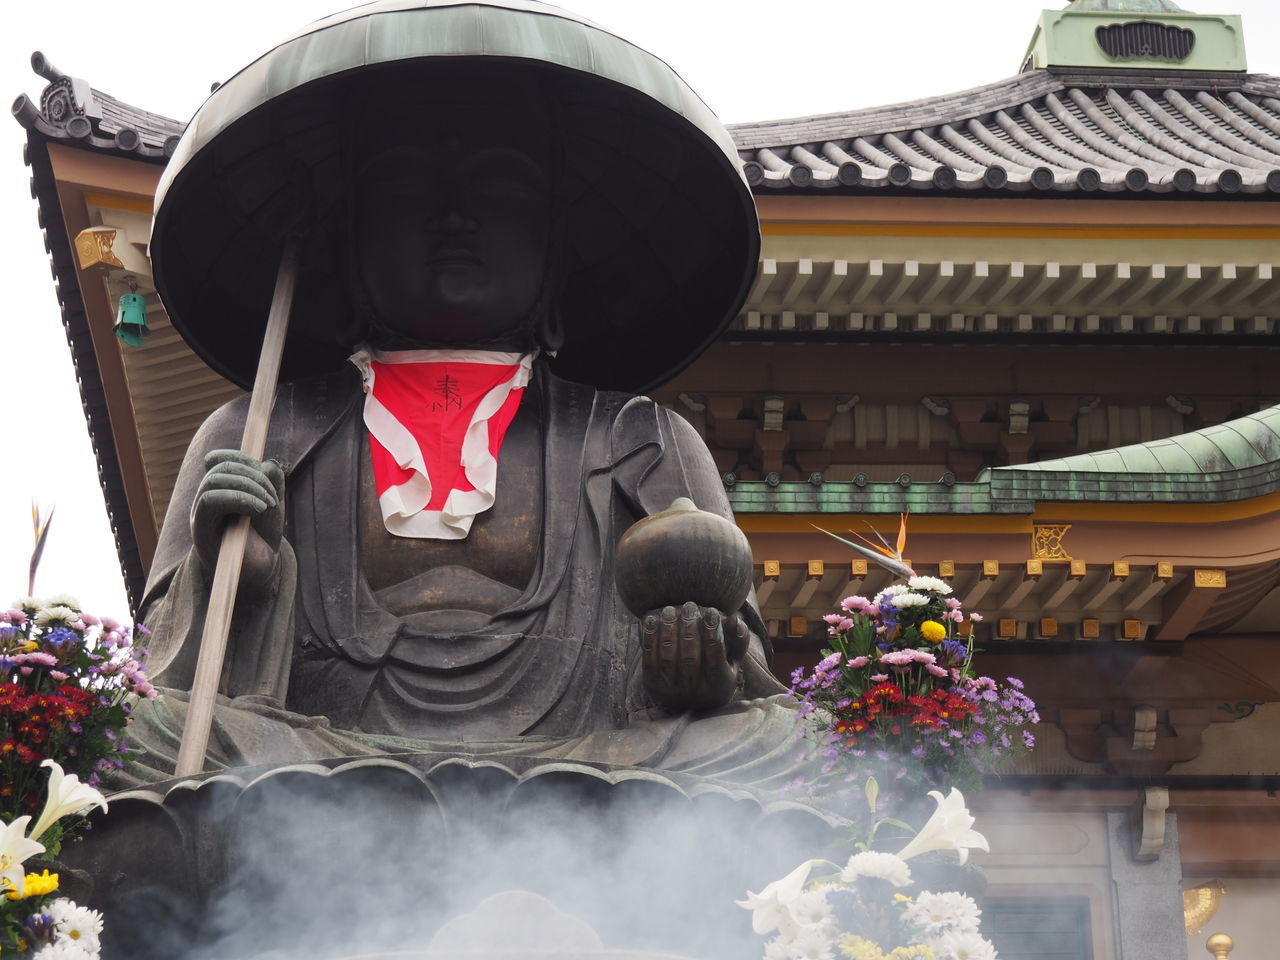 Architecture Bouddha  Buddha Buddha Statue Buddha Temple Building Exterior Built Structure Celebration Day Flower Hat Human Representation Japanese Culture Low Angle View No People Offering To God Outdoors Sculpture Smoke Statue Stick Travel Destinations